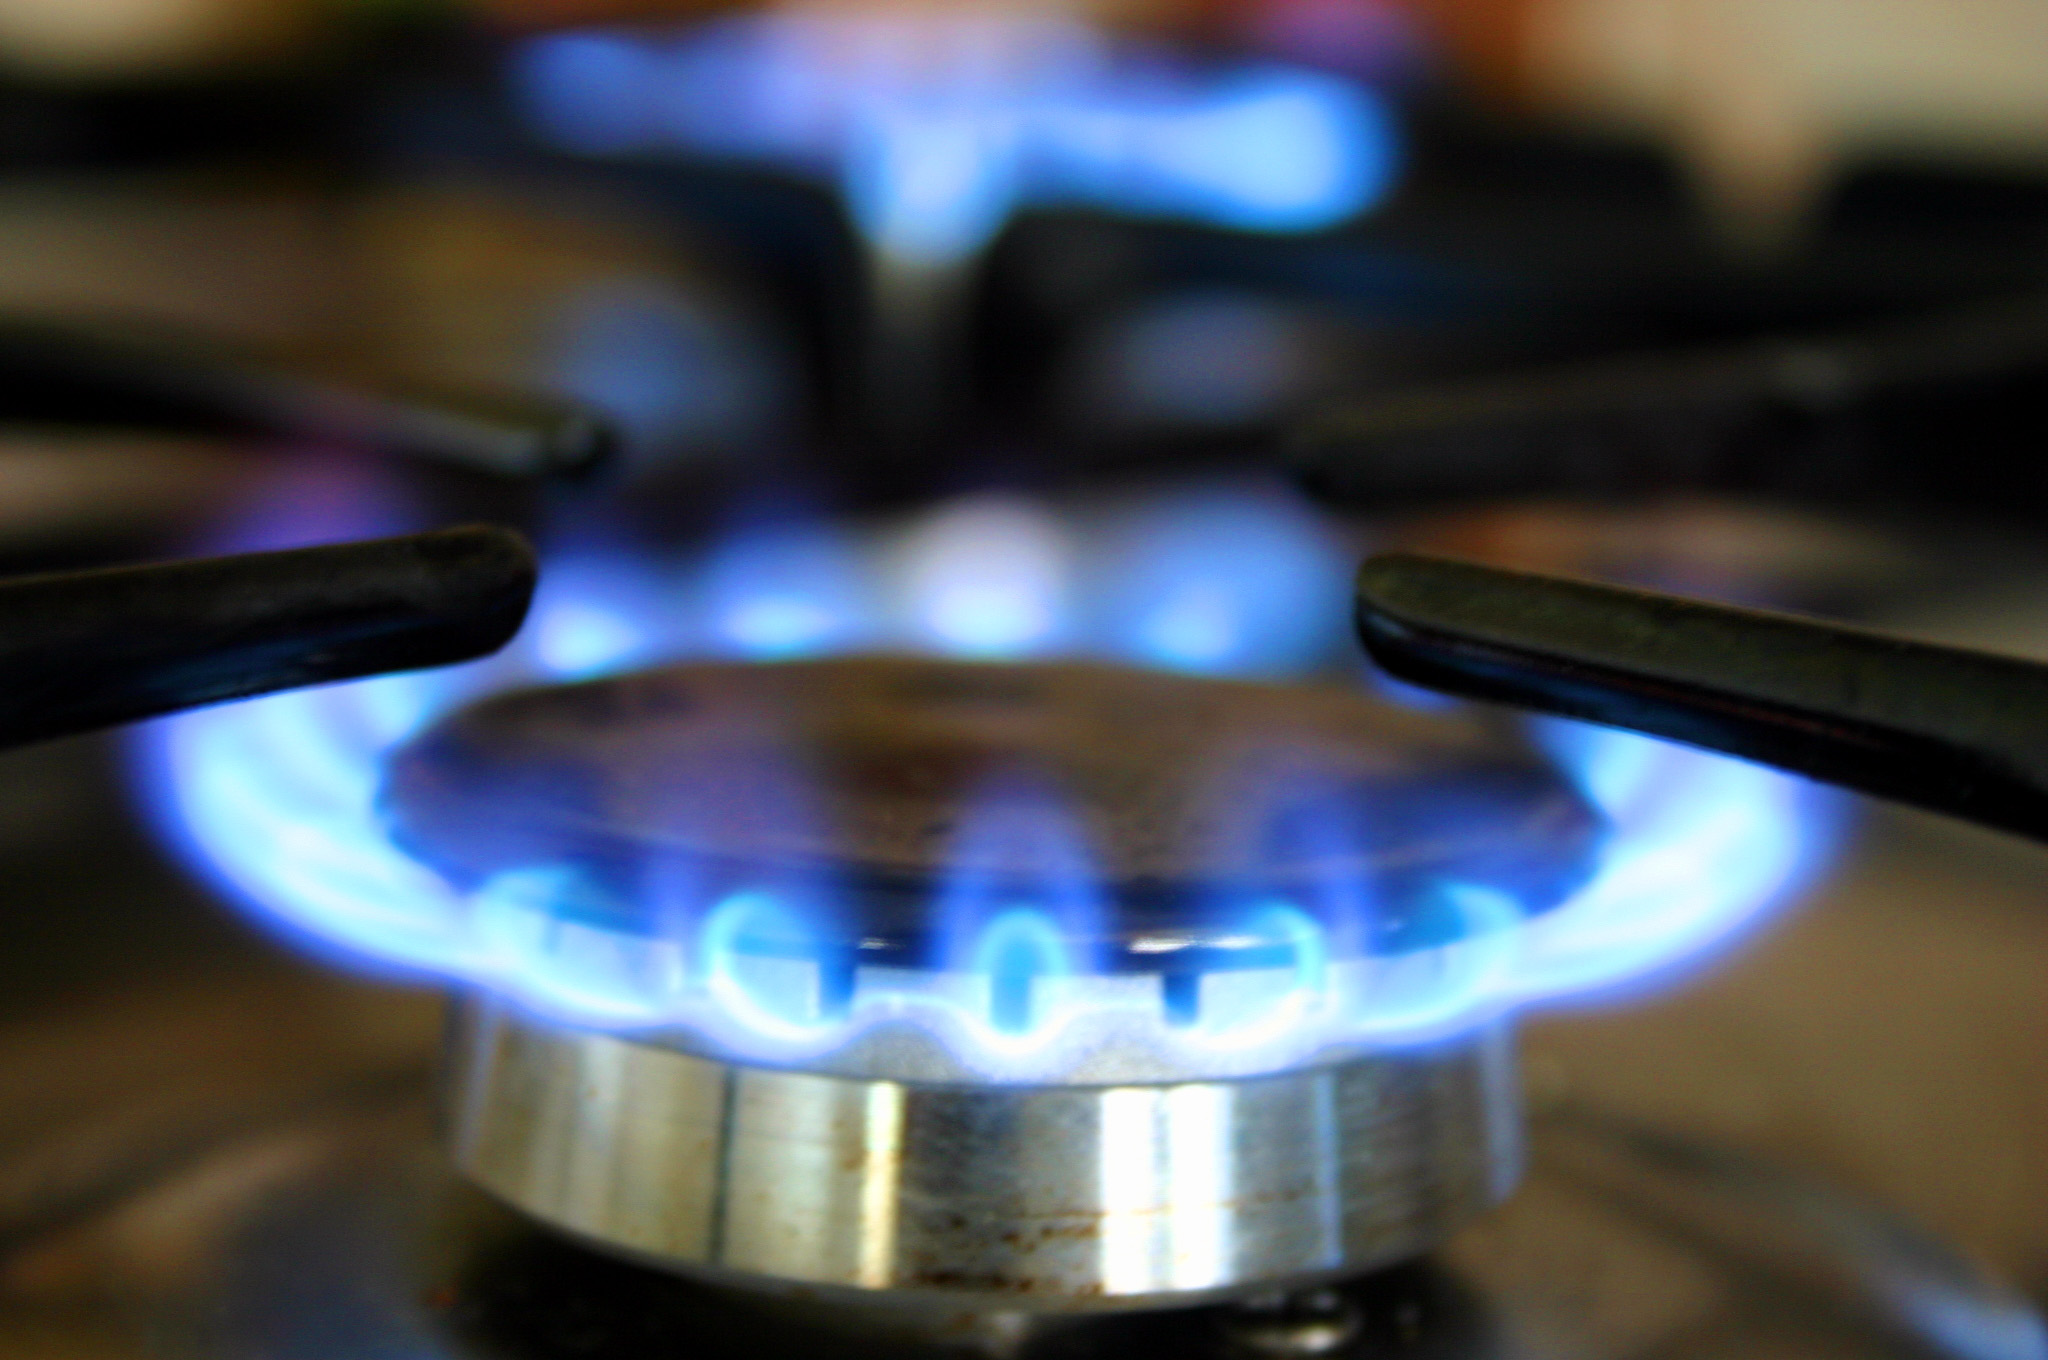 ScottishPower will today reduce gas and electricity prices by 3.3%